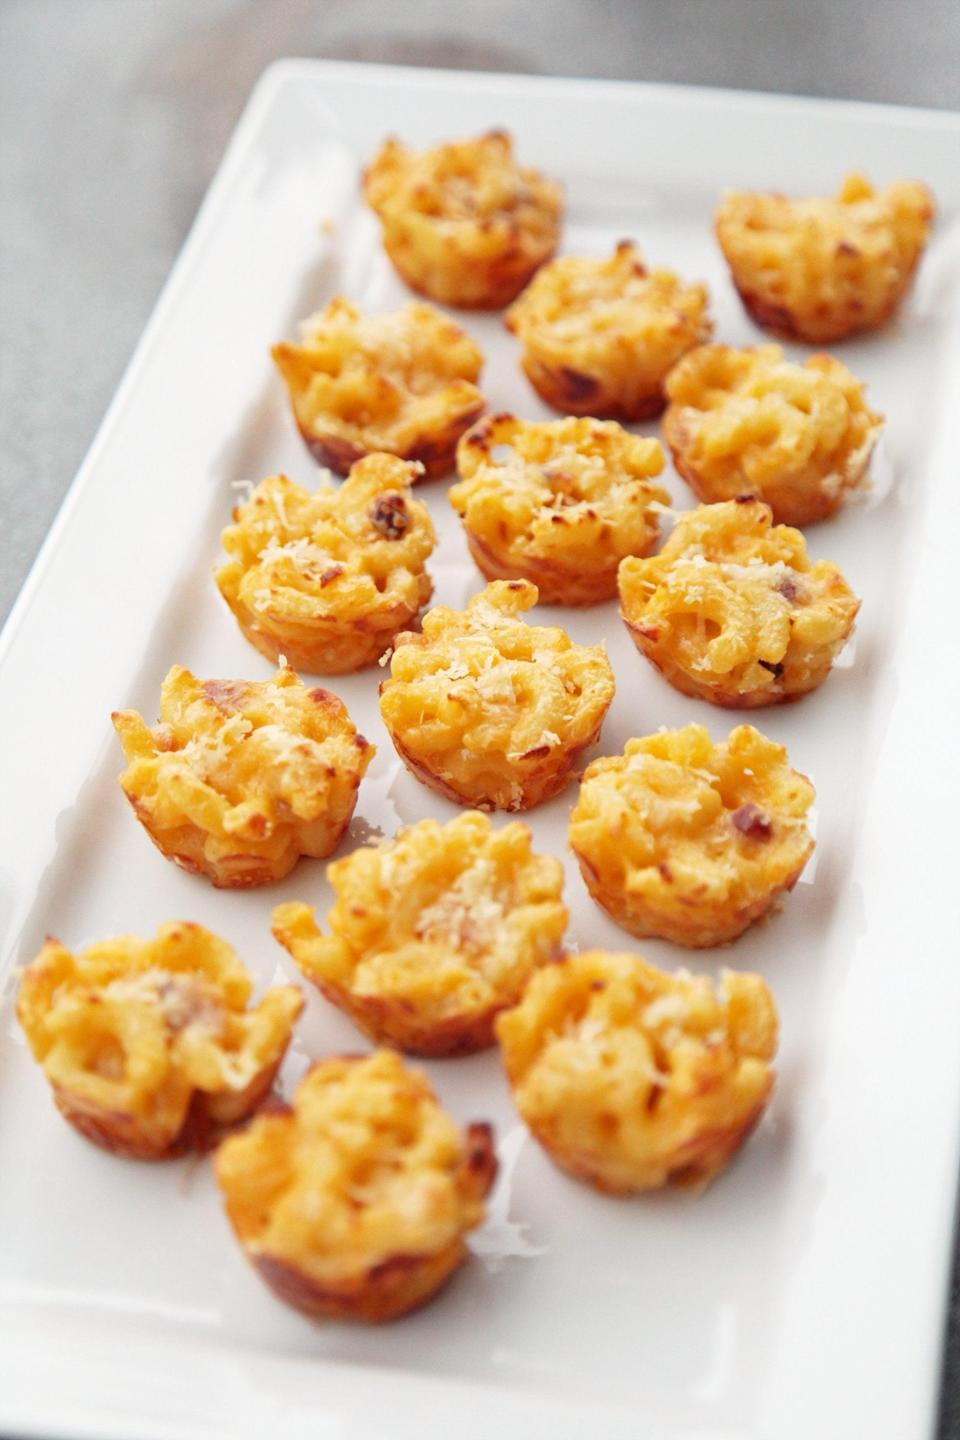 """<p>You know your dinner is off to a good start when mac and cheese makes a debut at the top of the menu! These little bites are filled with warm noodles and rich cheese, making it hard to stop eating them. Dig in!</p> <p><strong>Get the recipe:</strong> <a href=""""https://www.popsugar.com/food/Mini-Macaroni-Cheese-Appetizer-Recipe-5876505"""" class=""""link rapid-noclick-resp"""" rel=""""nofollow noopener"""" target=""""_blank"""" data-ylk=""""slk:three-cheese mini macaroni and cheese bites"""">three-cheese mini macaroni and cheese bites</a></p>"""